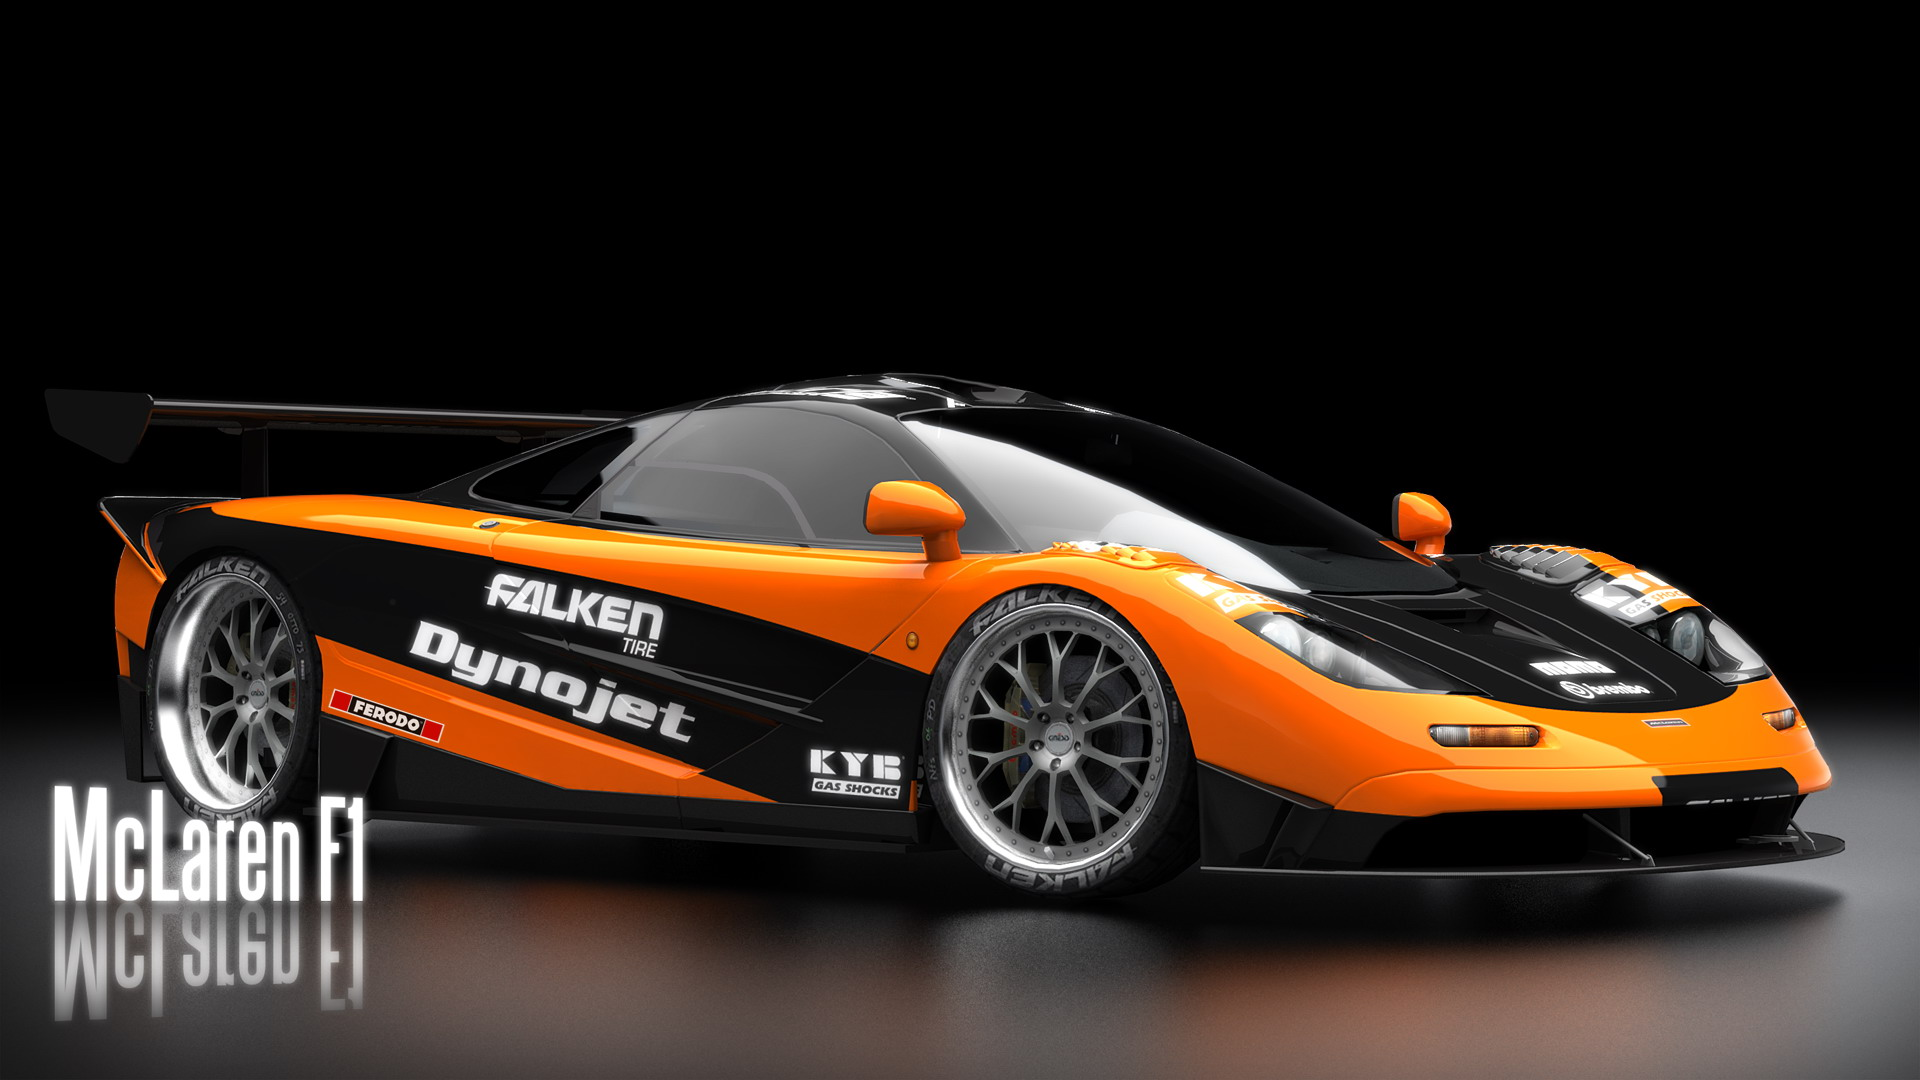 Mclaren f1 Need for speed Shift 1567.72 Kb